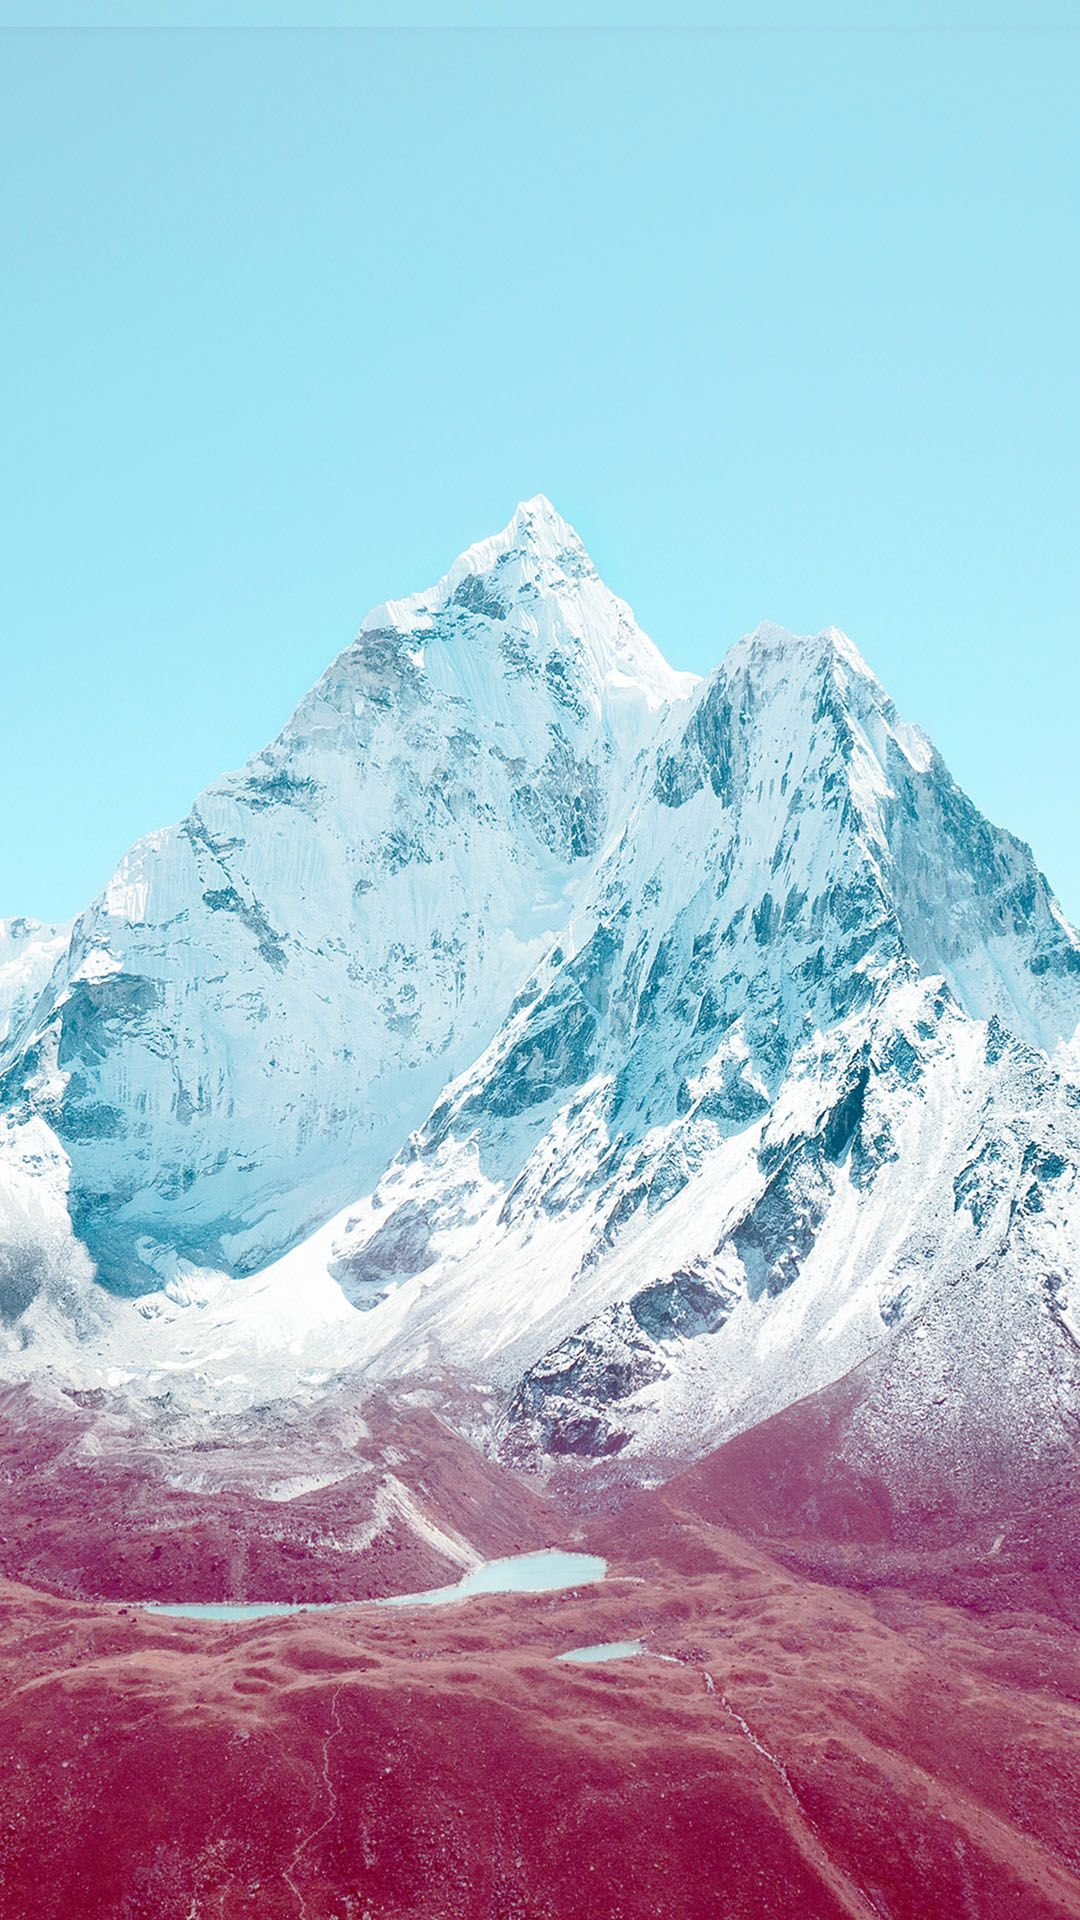 apple ios7 stock lock screen mountains android wallpaper 1080a—1920